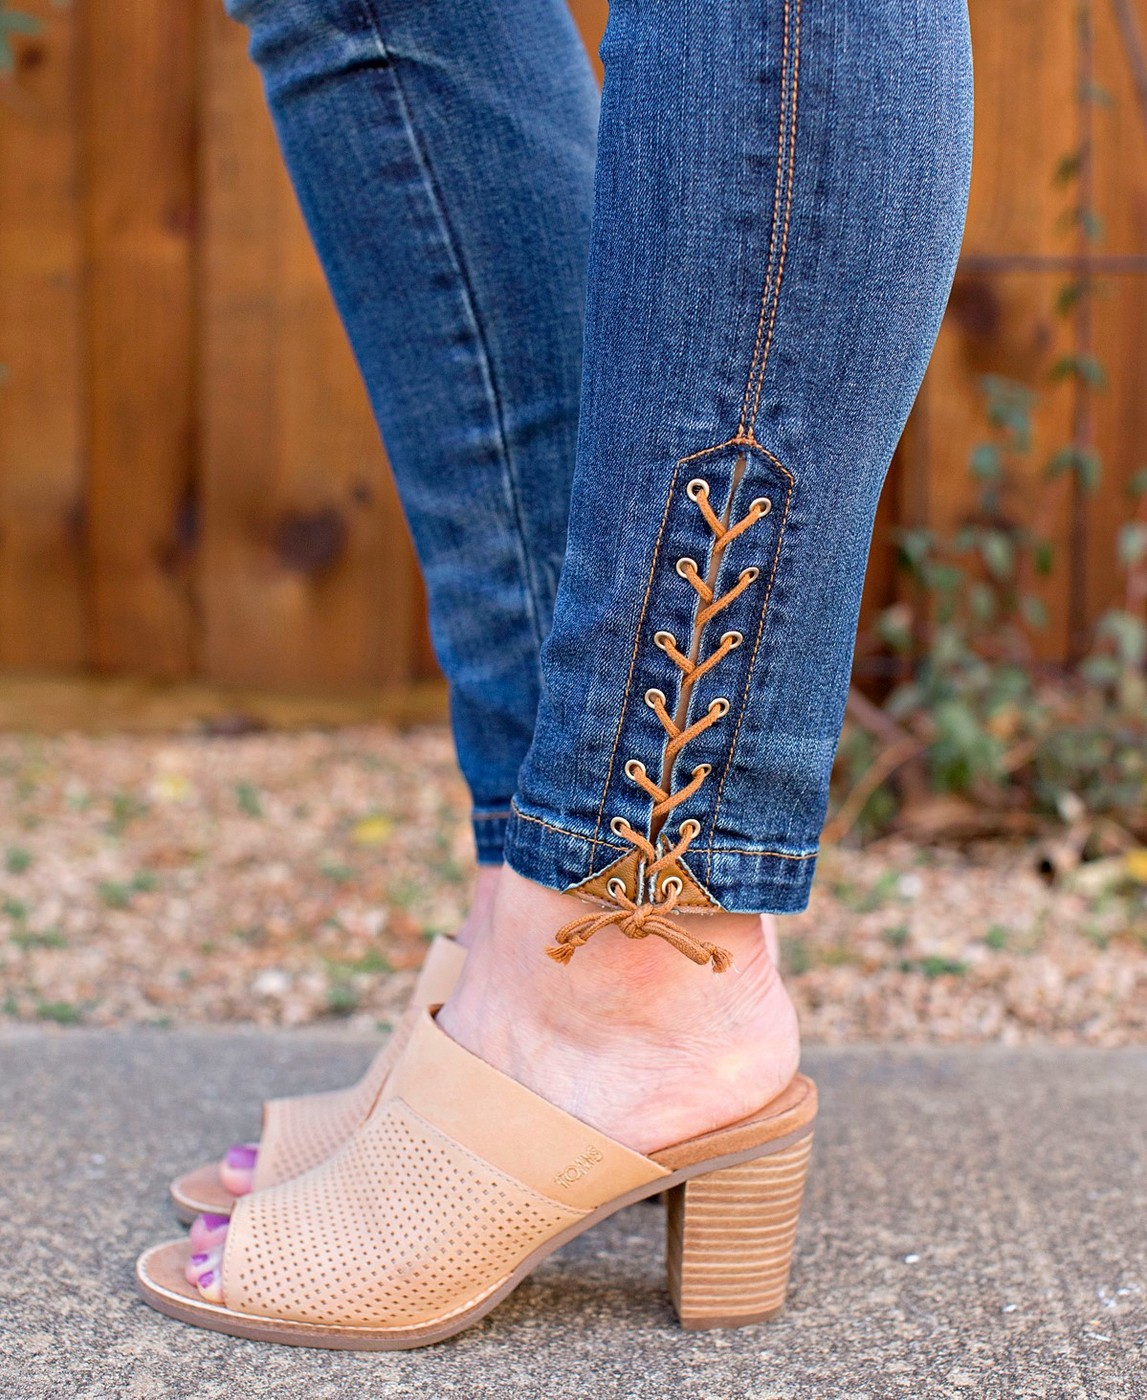 spring shoe trends, mules, Tom's mules, suede mules, block heel mules, tom's shoes